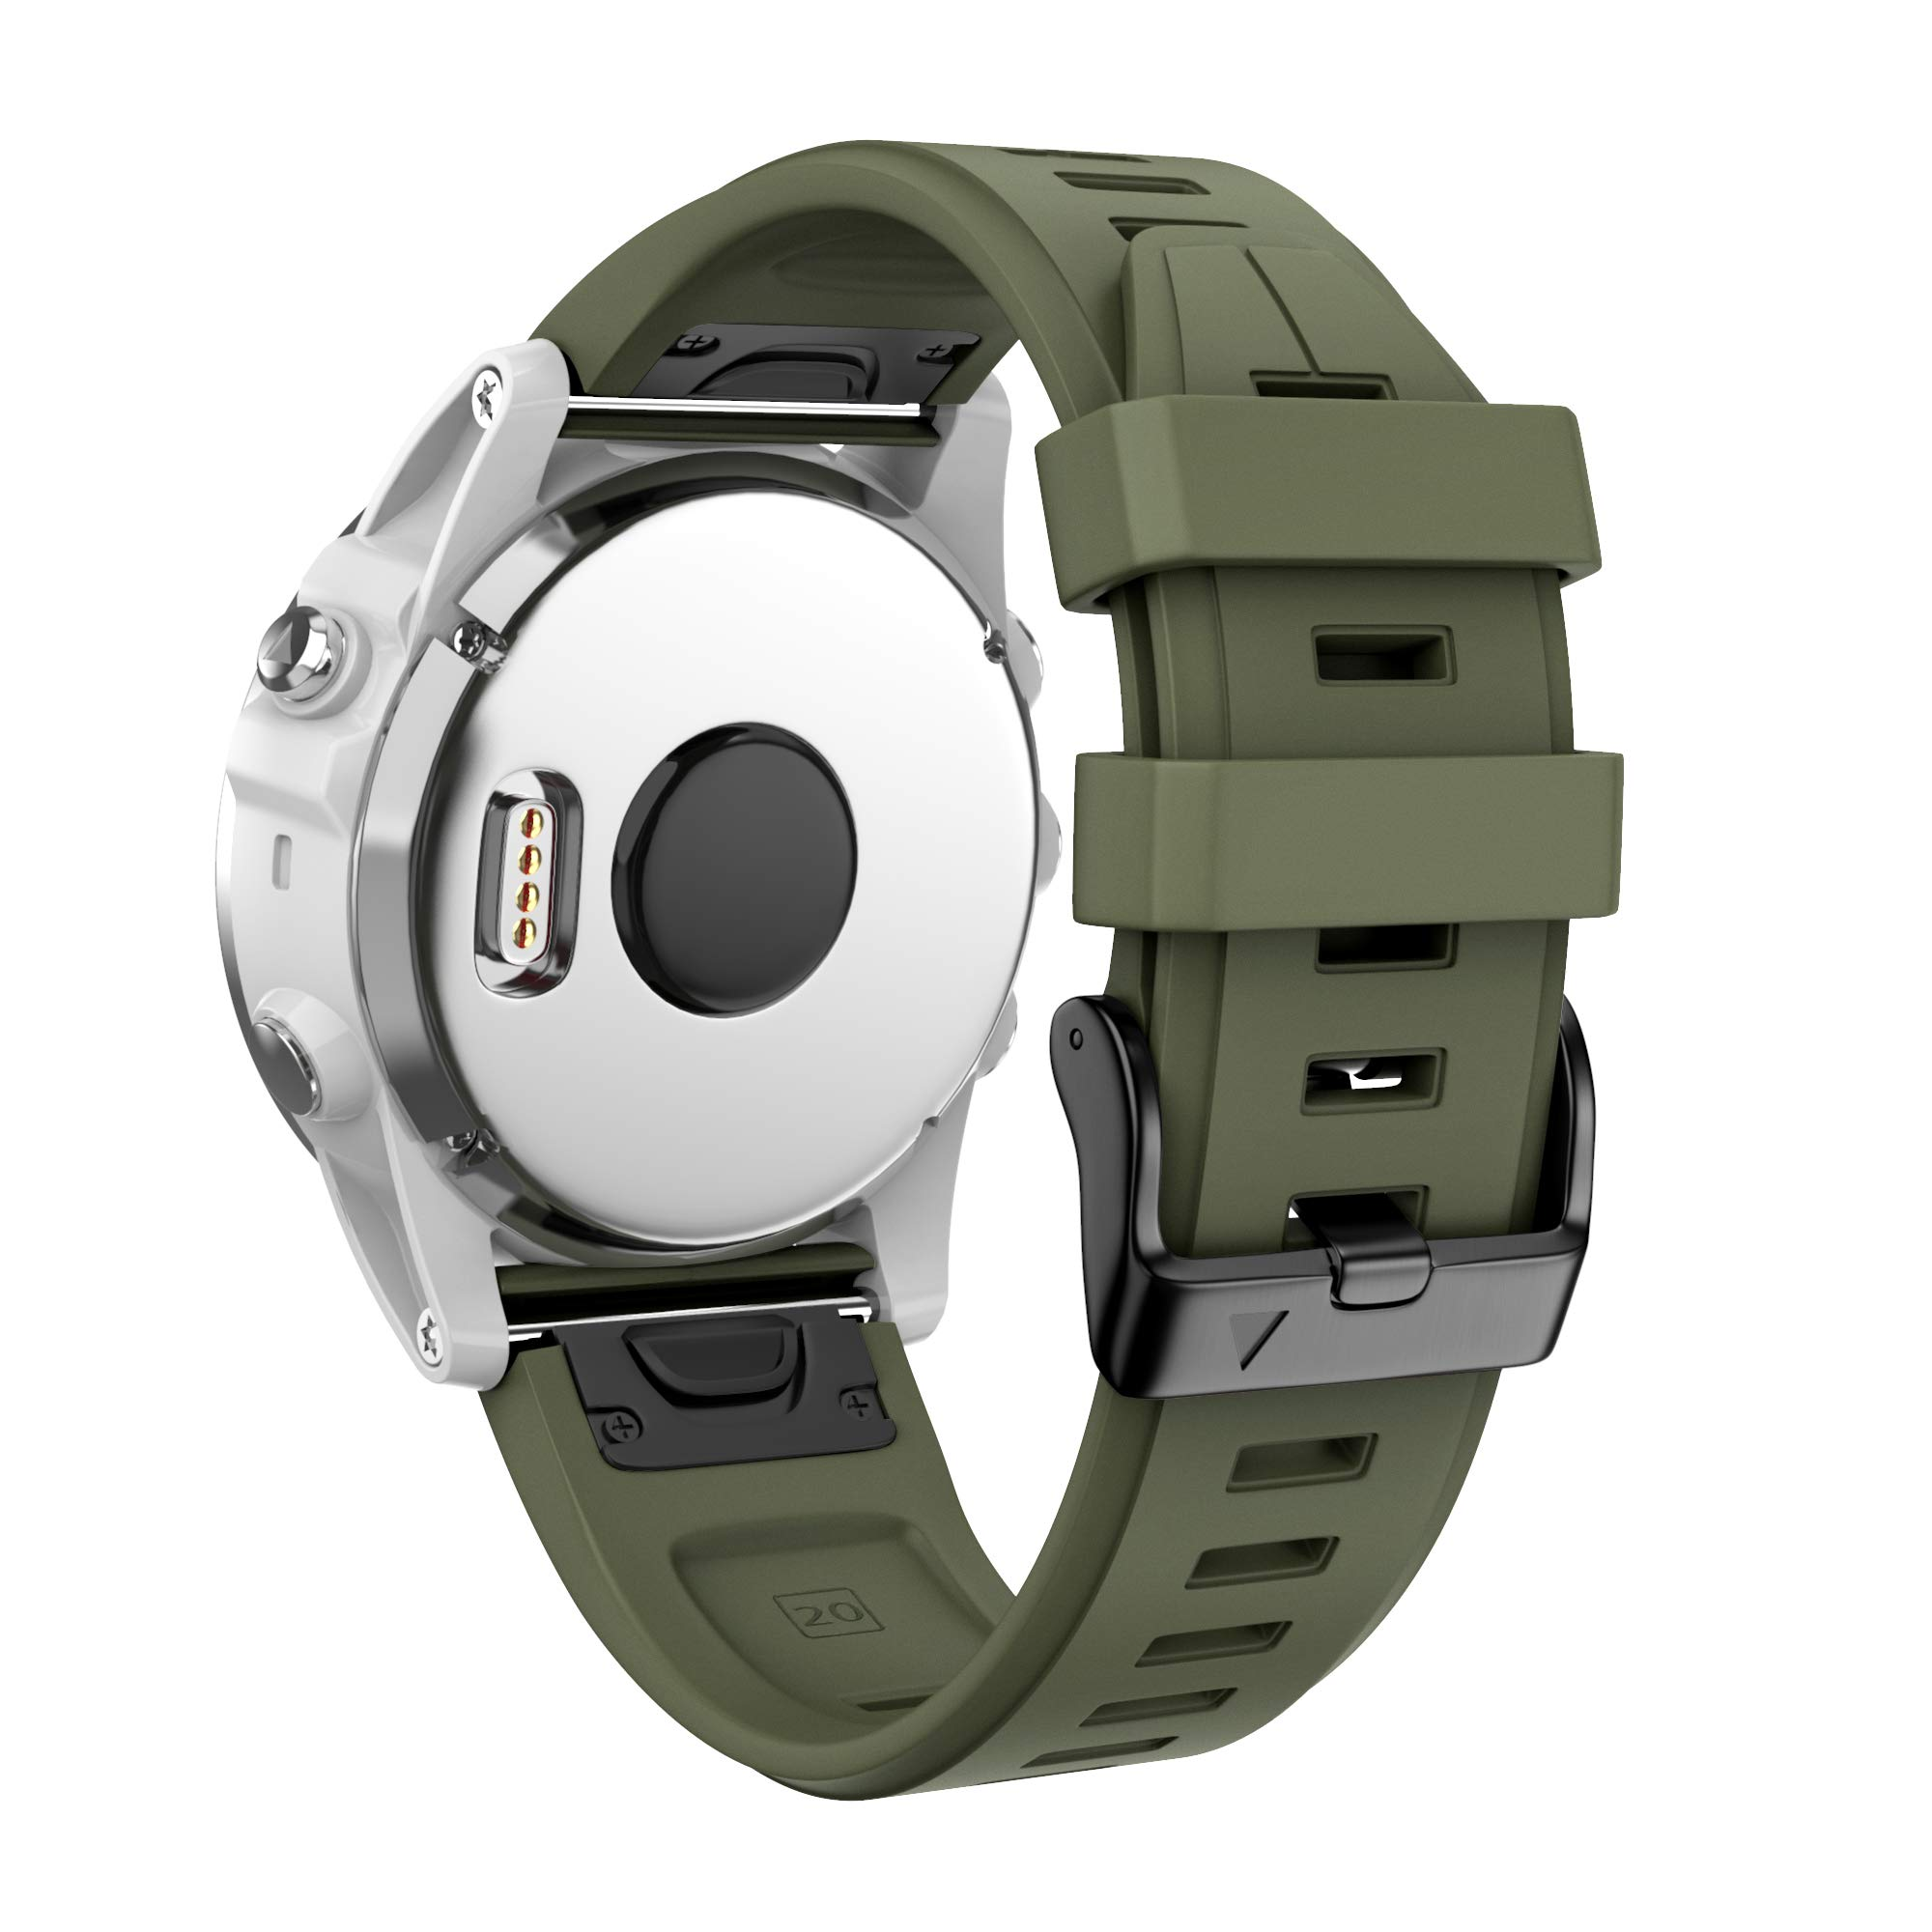 ANCOOL Compatible with Fenix 5S Plus Bands 20mm Width Easy Fit Soft Silicone Watch Bands Replacement for Fenix 6S/Fenix 6S Pro/Fenix 5S Smartwatches, Olive Green by ANCOOL